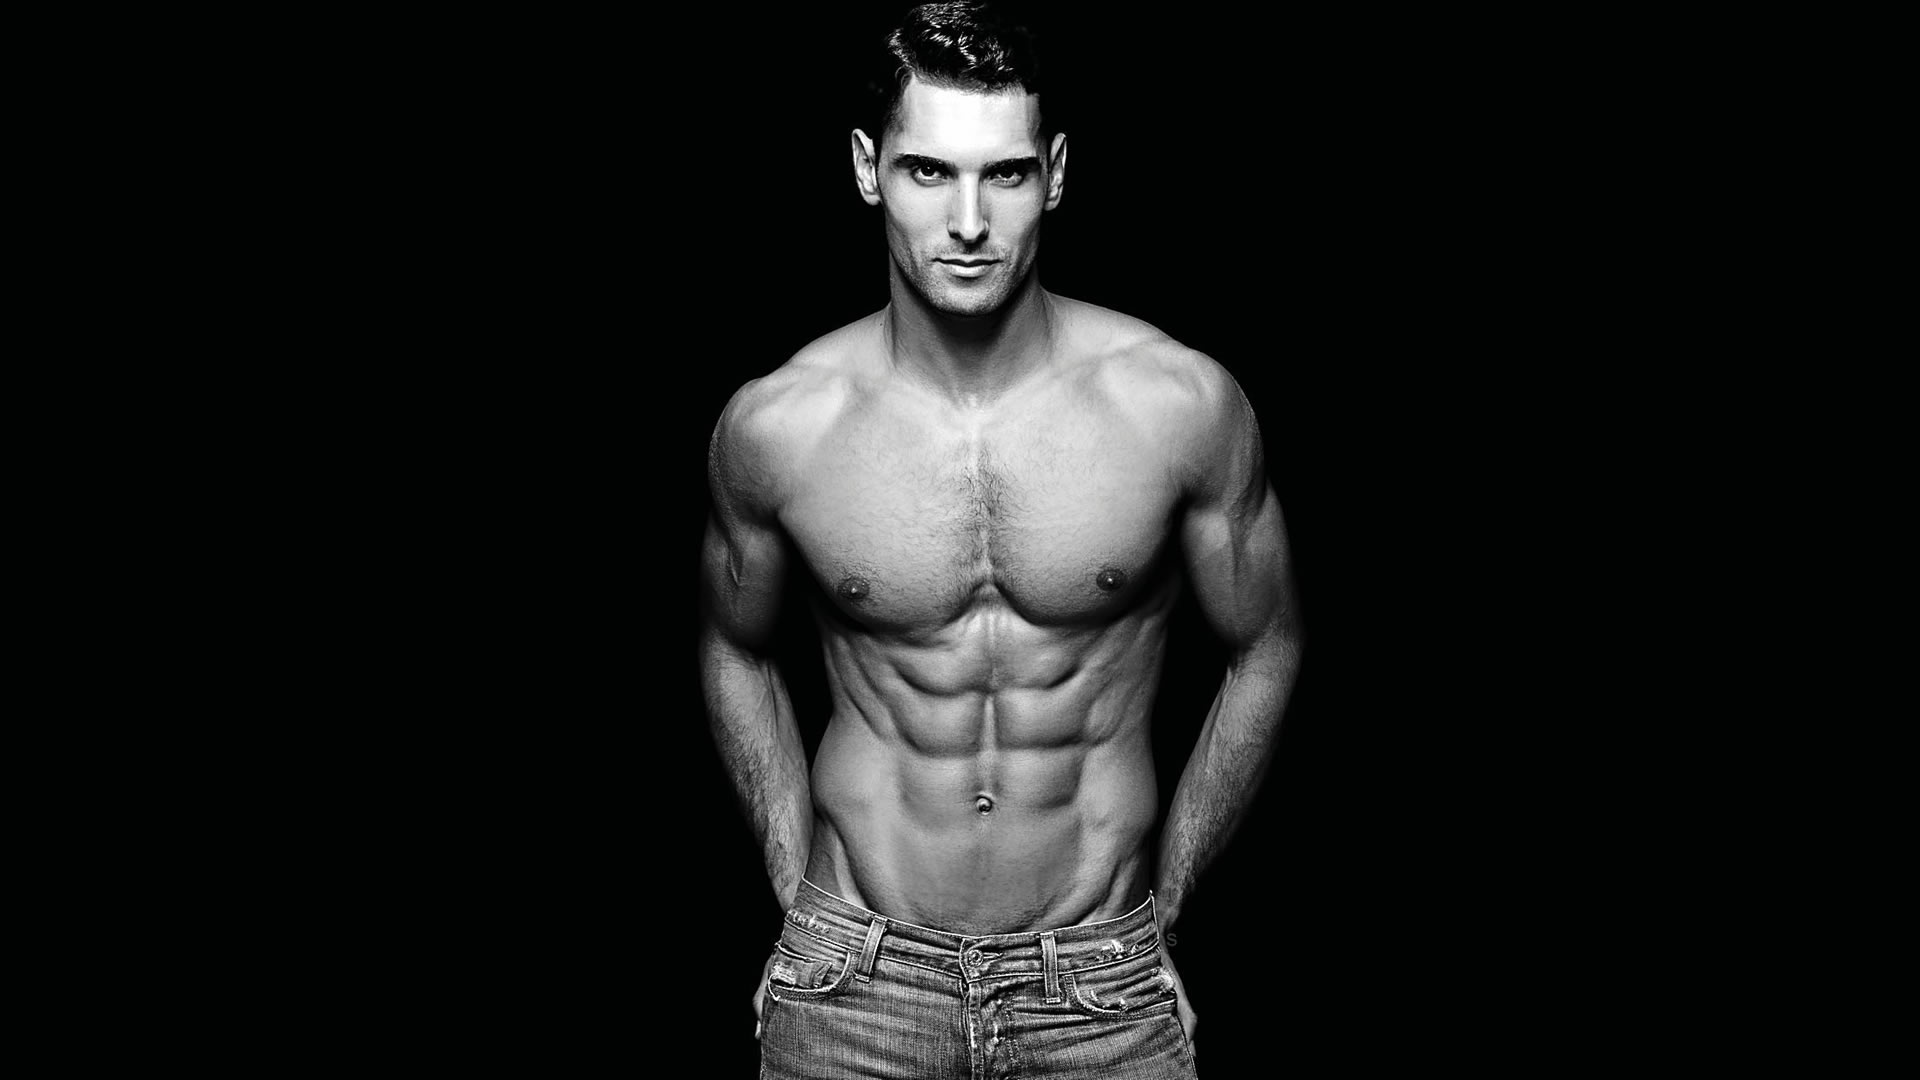 Black and White Fit Stud Shirtless in Jeans